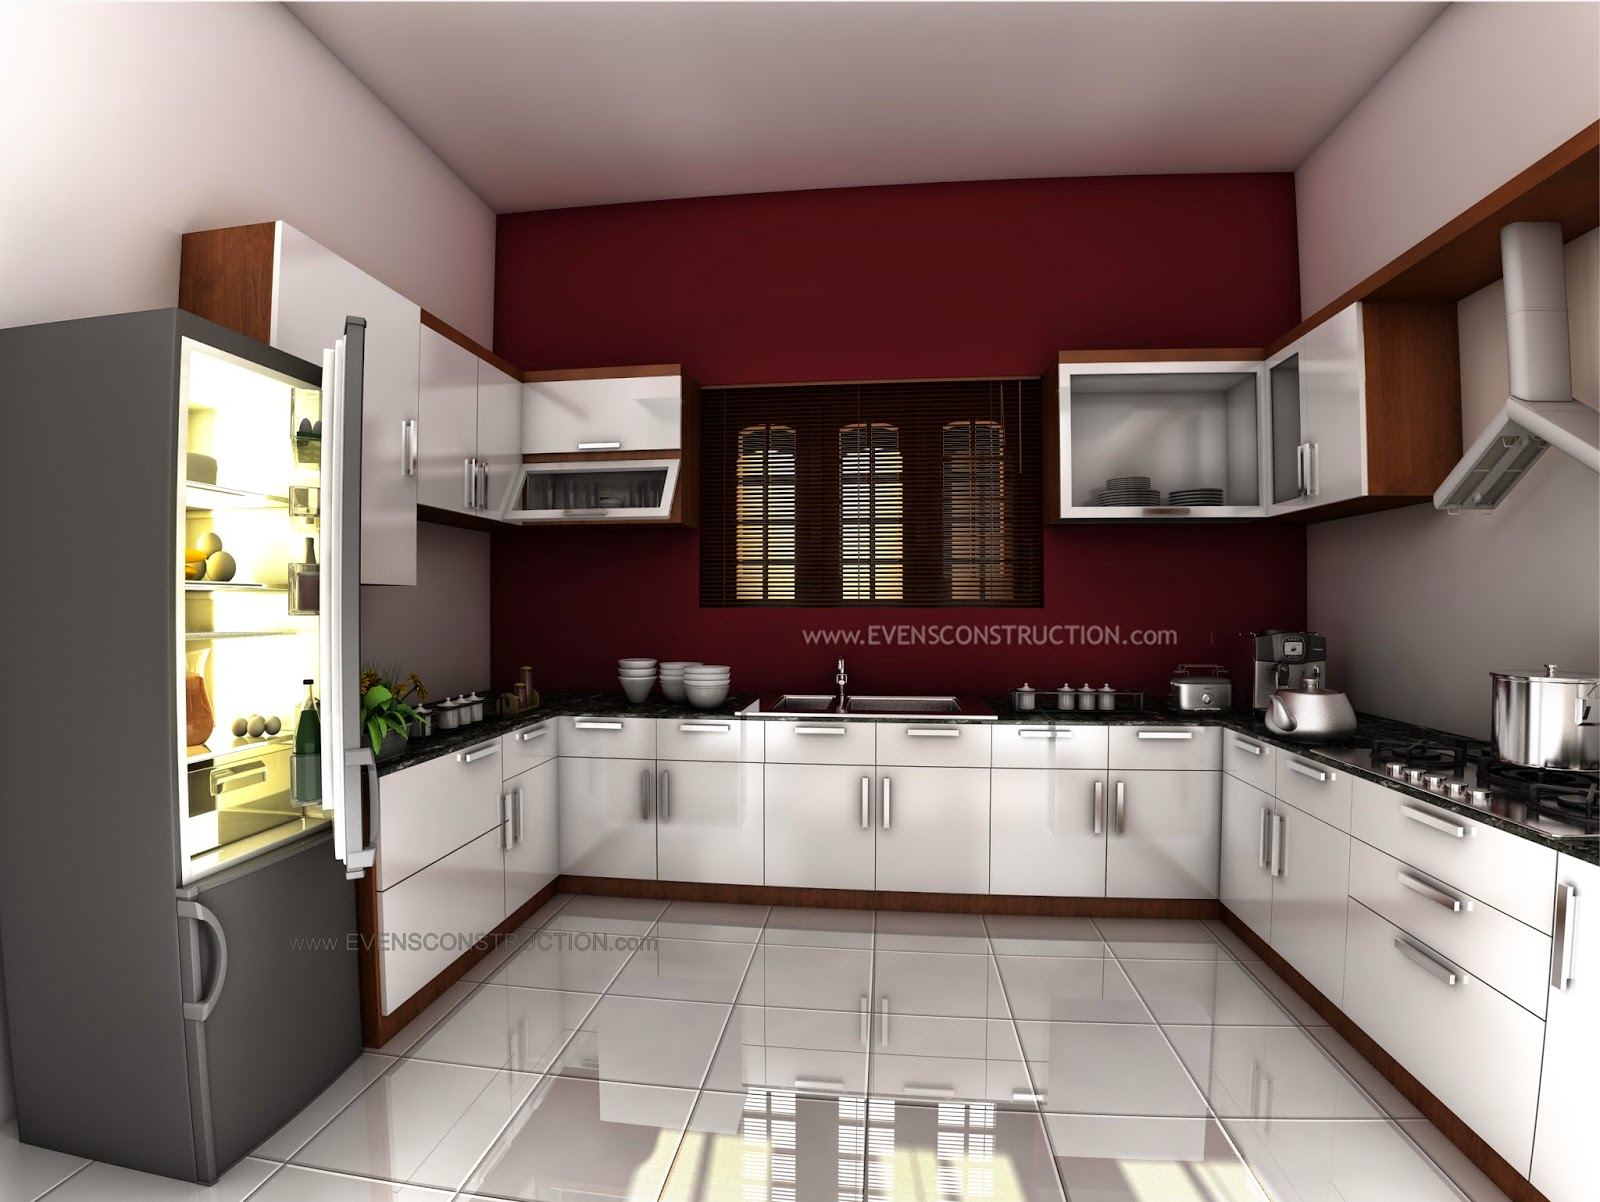 Ordinaire Kerala House Kitchen Interior Part 59